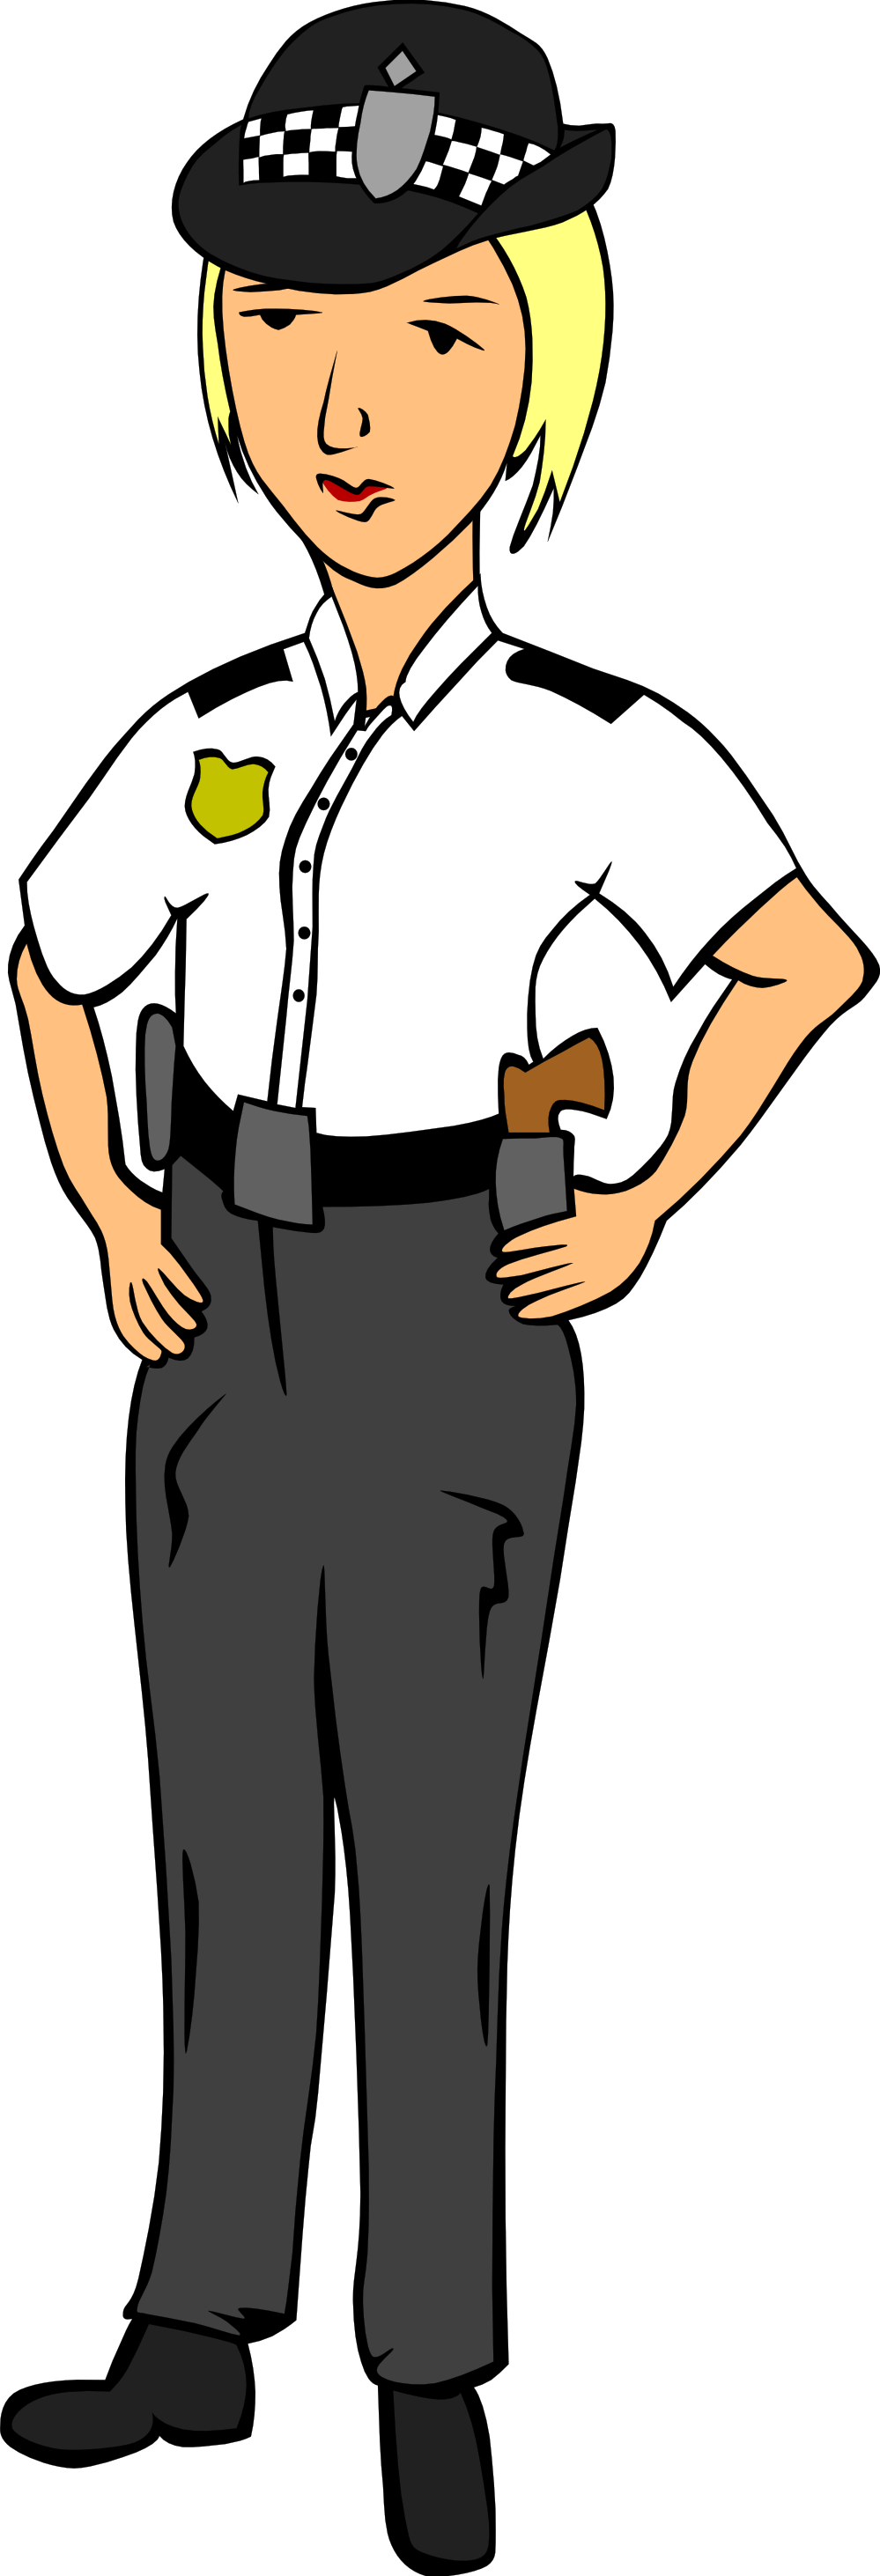 Police Officer Clipart - ClipArt Best